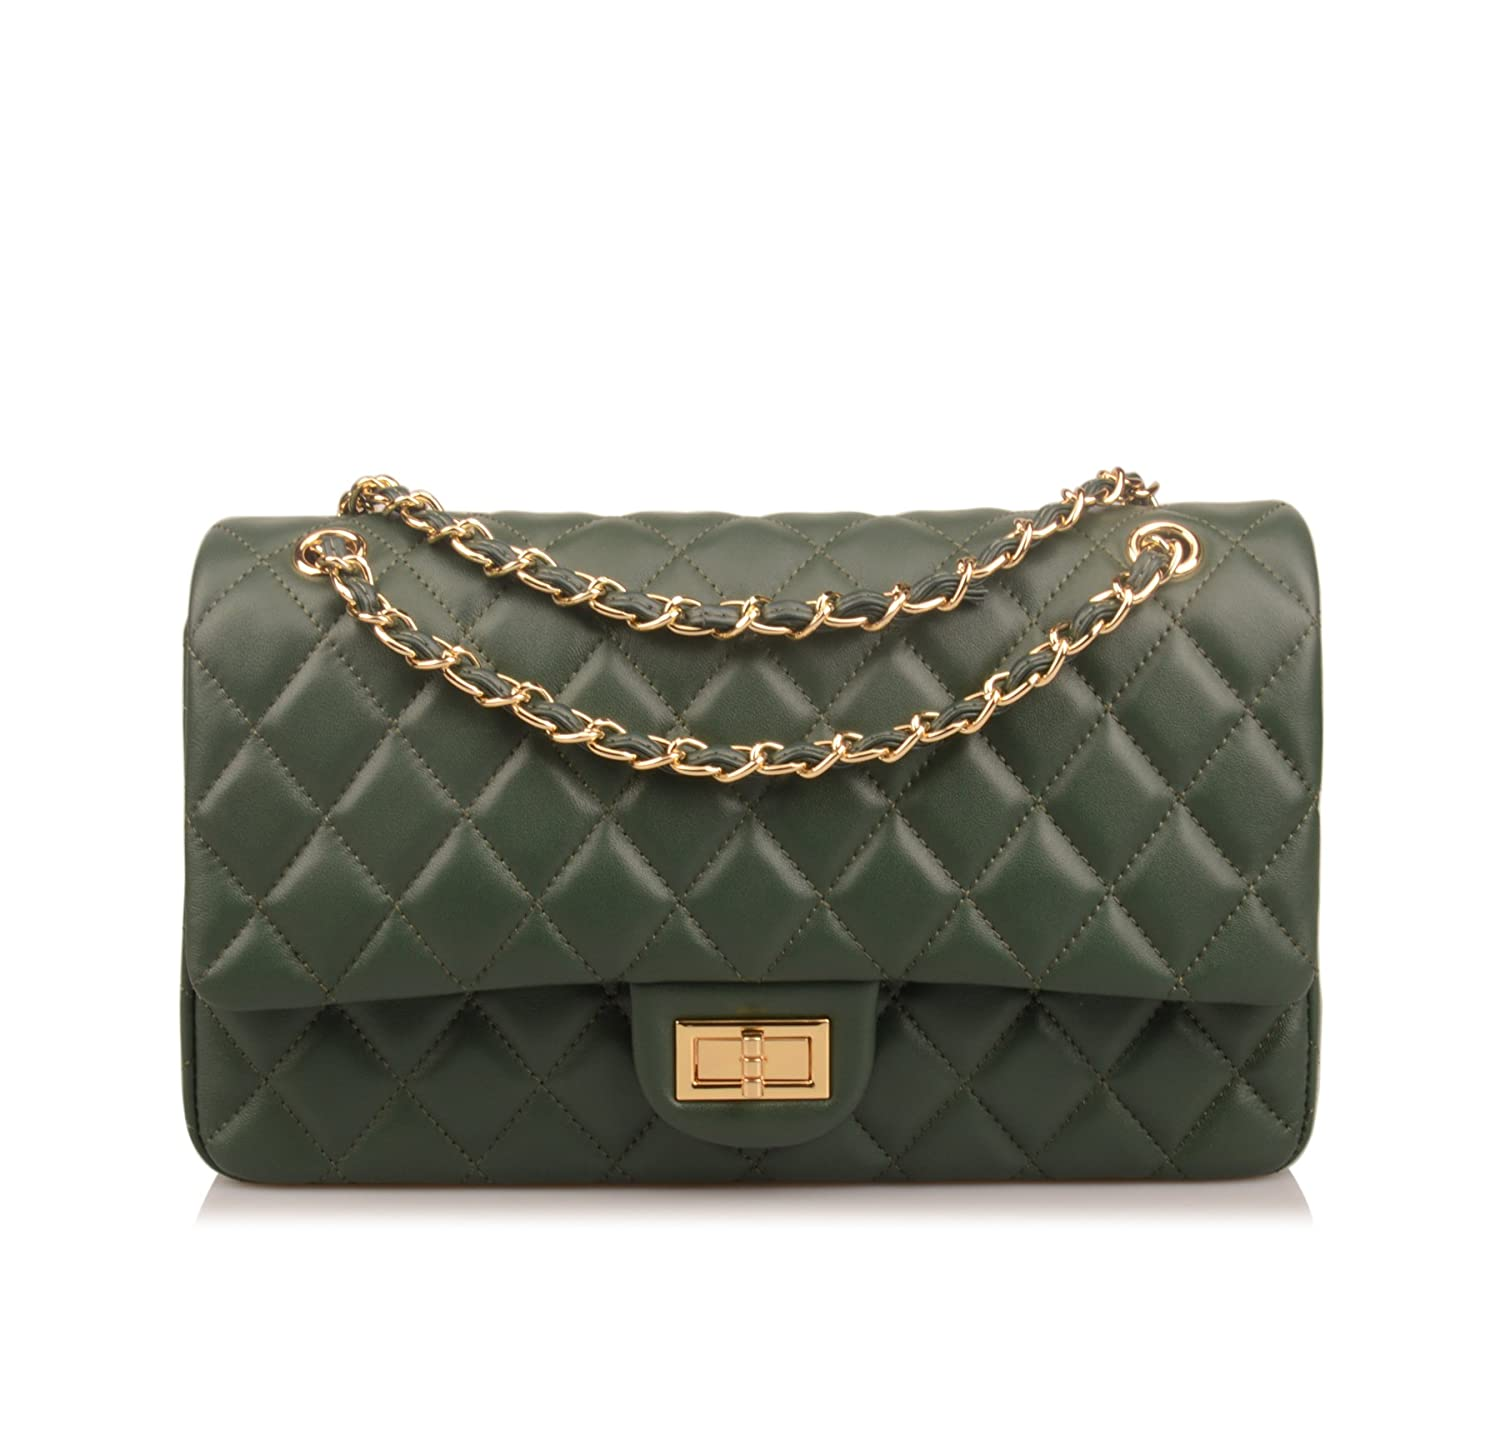 6ac6ac1ad2 Ainifeel Women s Genuine Leather Quilted Chain Bag Shoulder Handbags Purse   Amazon.co.uk  Shoes   Bags